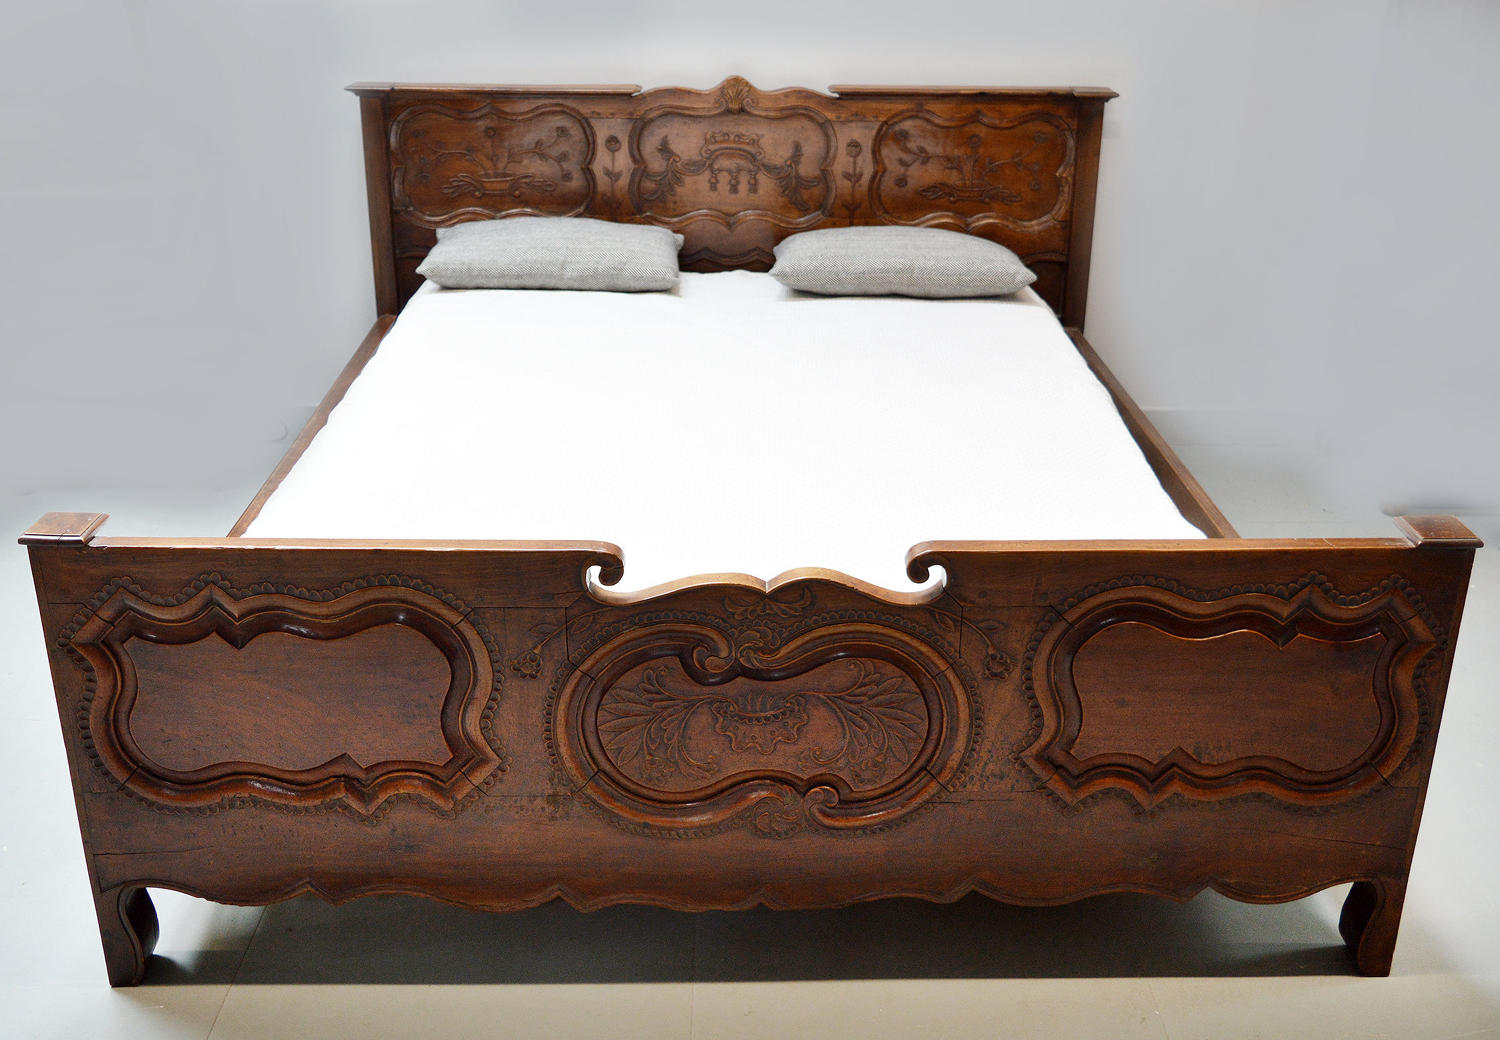 19th Century Rennes Marriage King size Bedstead